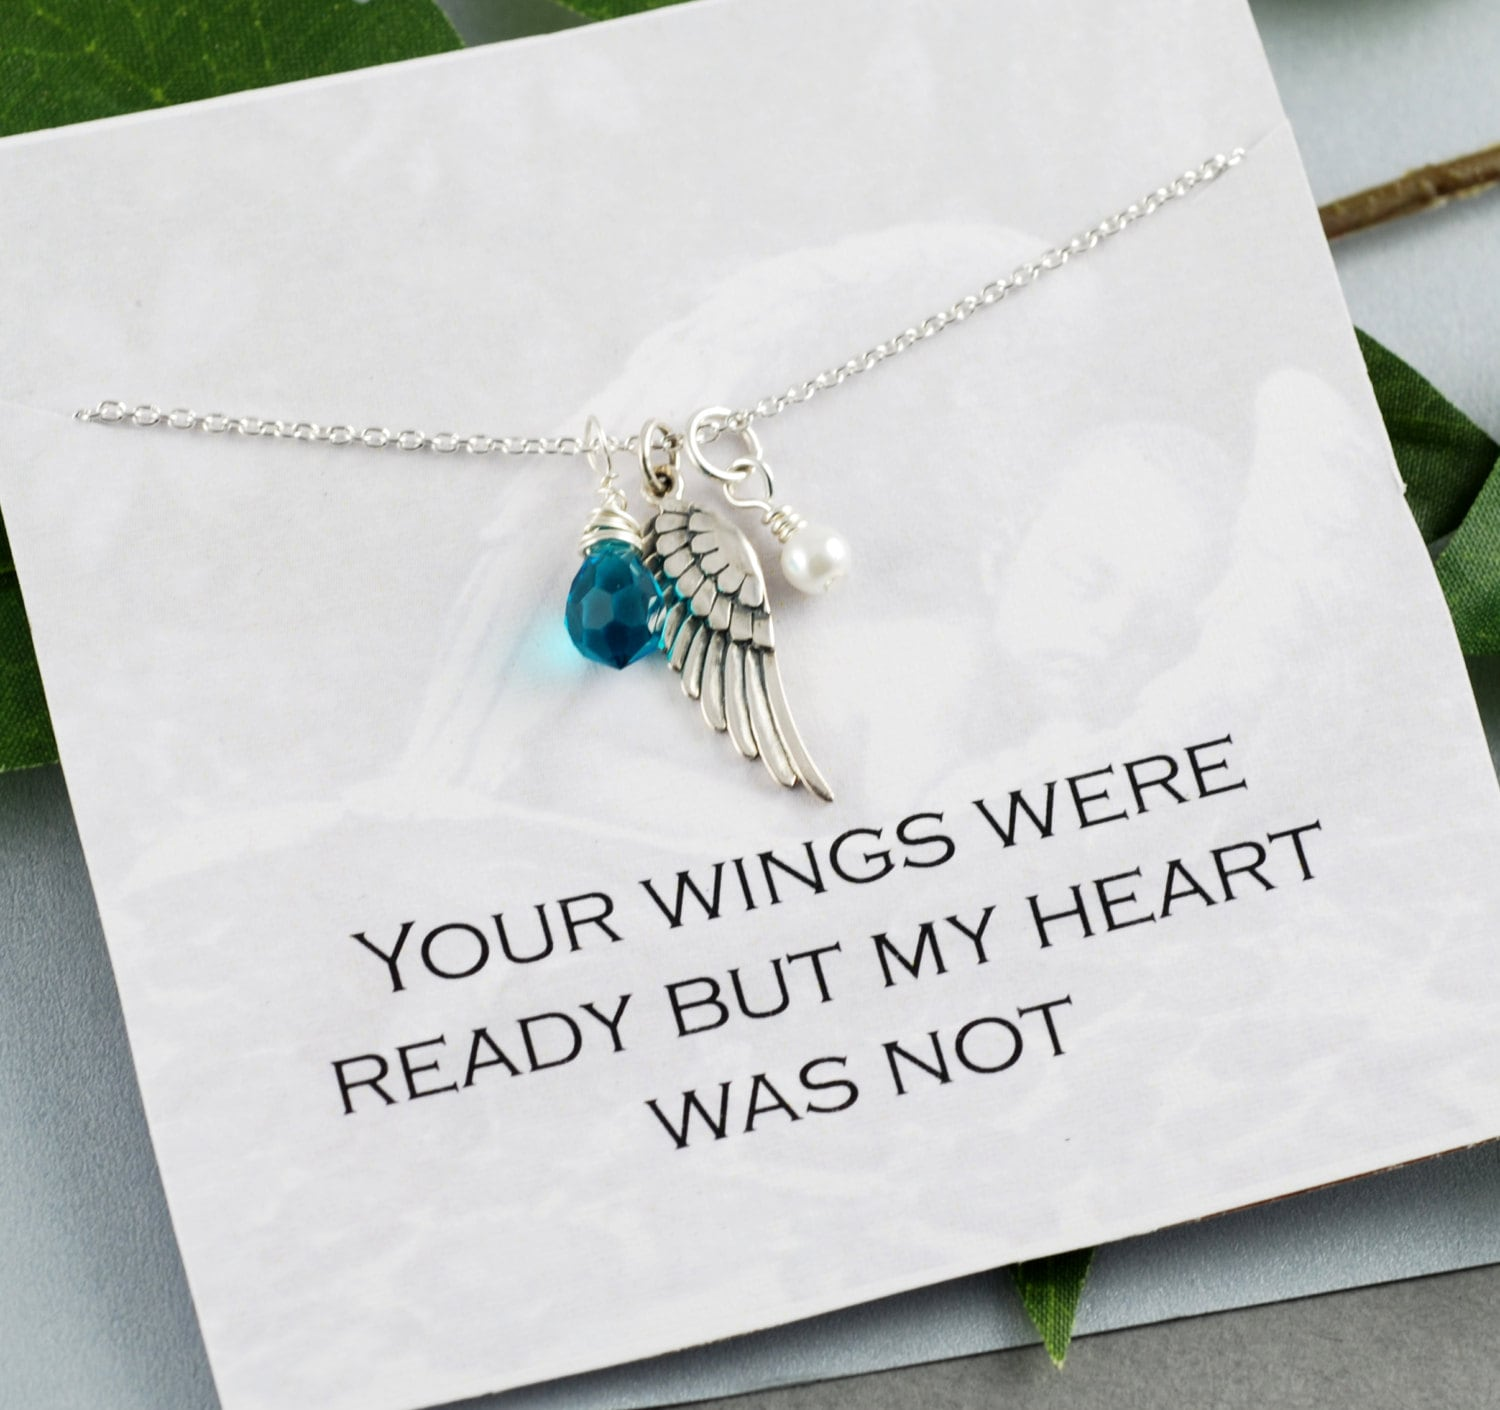 baby traded child his necklace for loving mommy bereavement new wings my cape superhero losing forever an memorial loss memory heart angel products jewelry miscarriage font a of